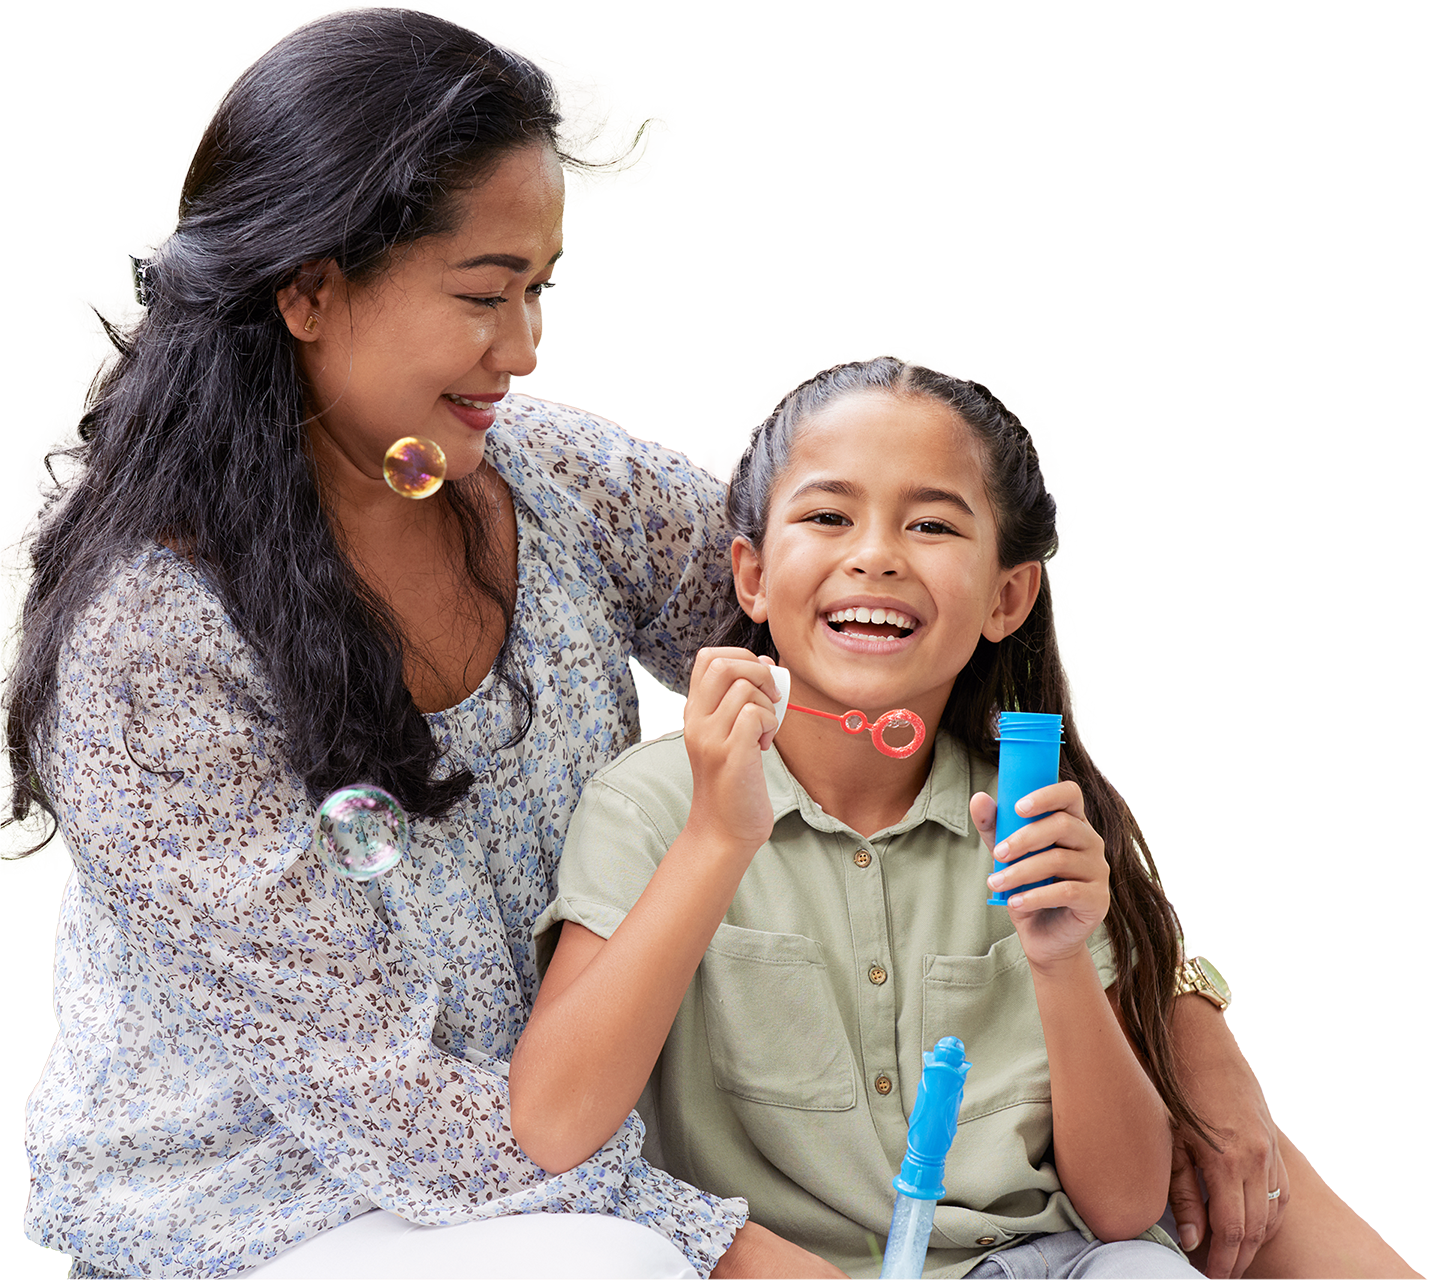 Hispanic mother smiling down and cuddling her smiling daughter who is blowing bubbles